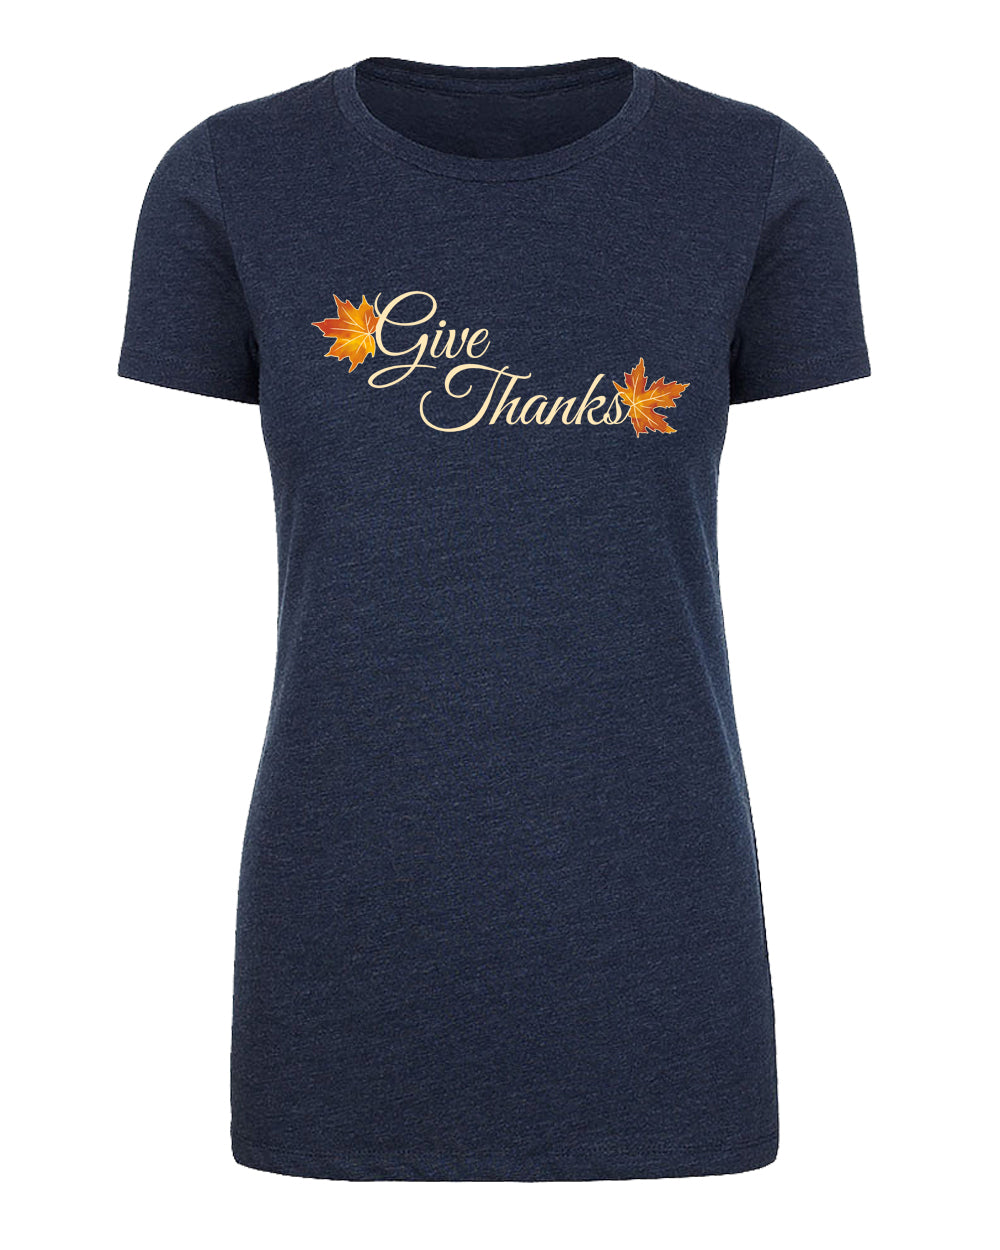 Shirt - Give Thanks Women's Thanksgiving Shirts